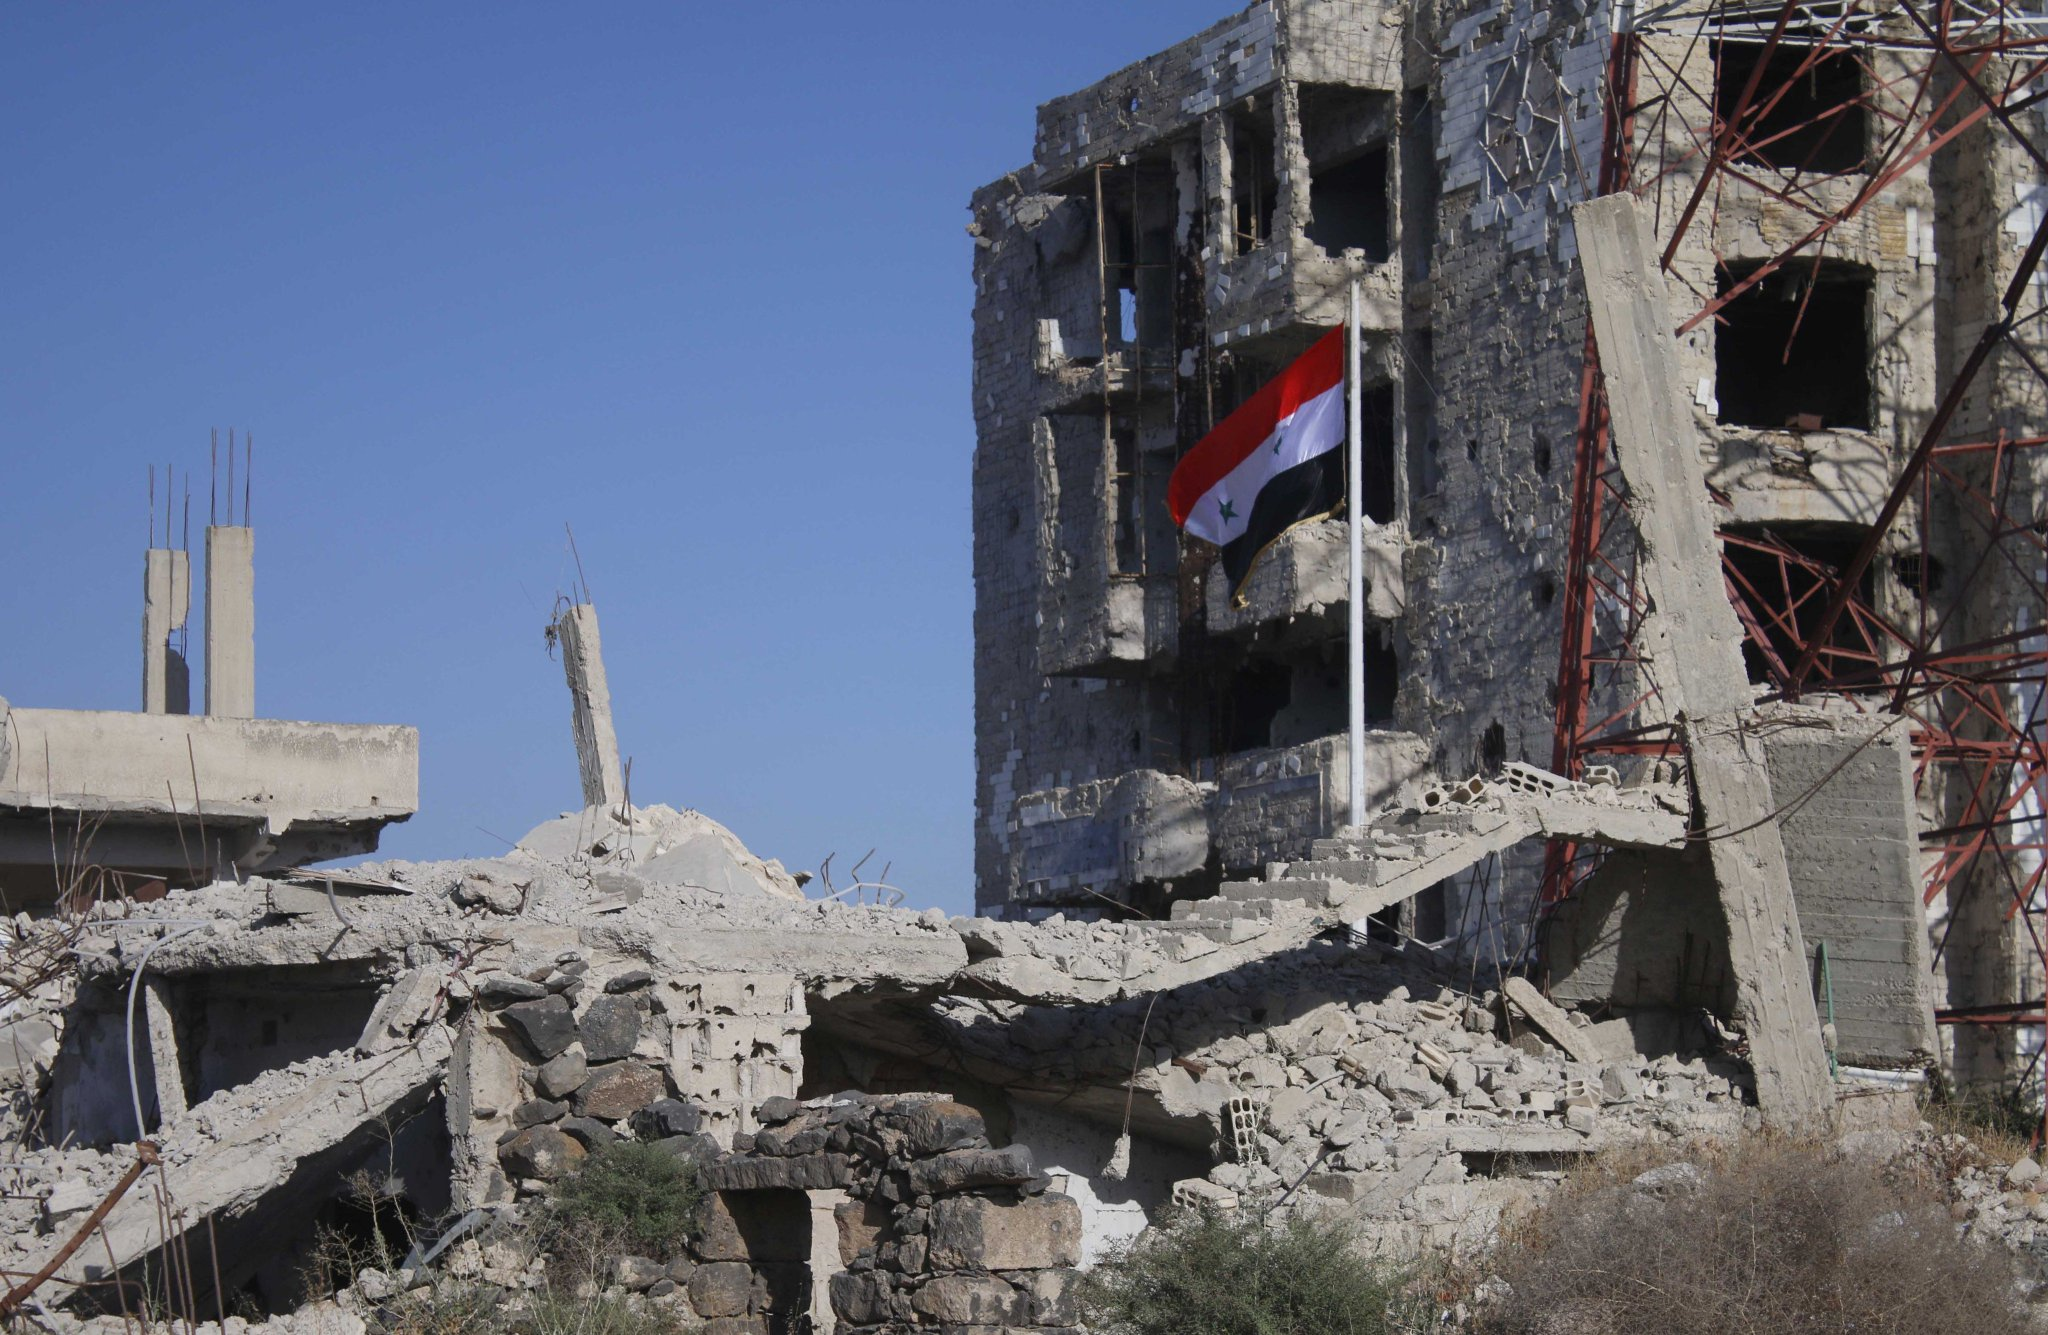 The flag of the Syrian regime on top of the ruins of the buildings in the city of Daraa - 12 July, 2018 (AFP)